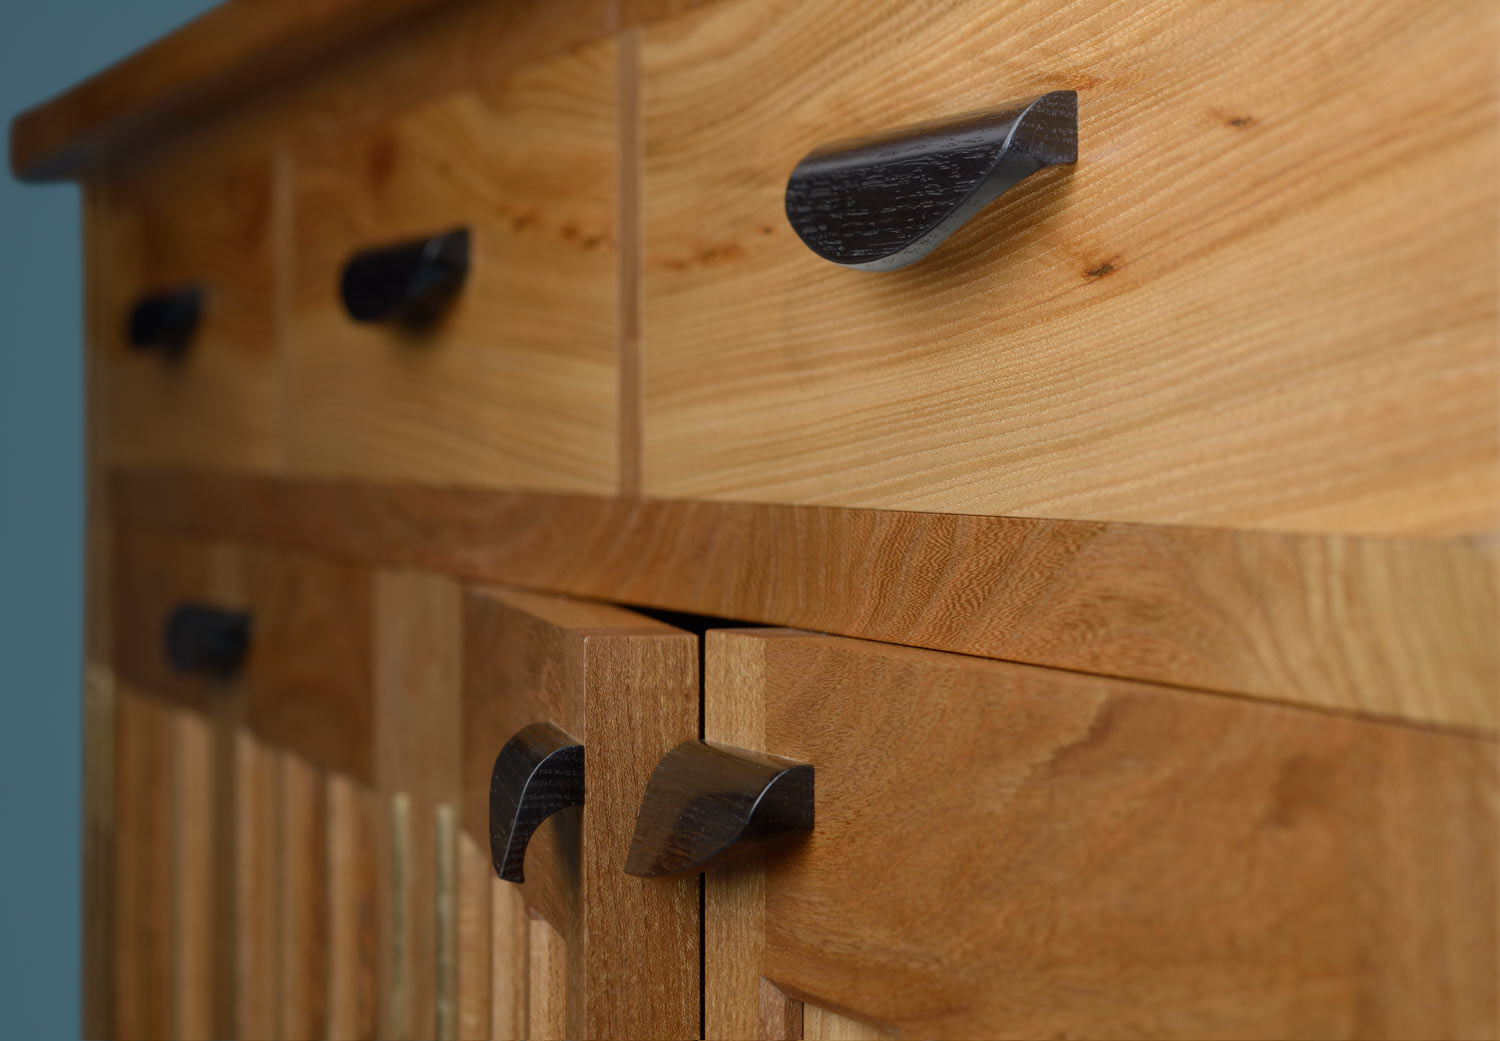 Budleigh cabinet - handles details